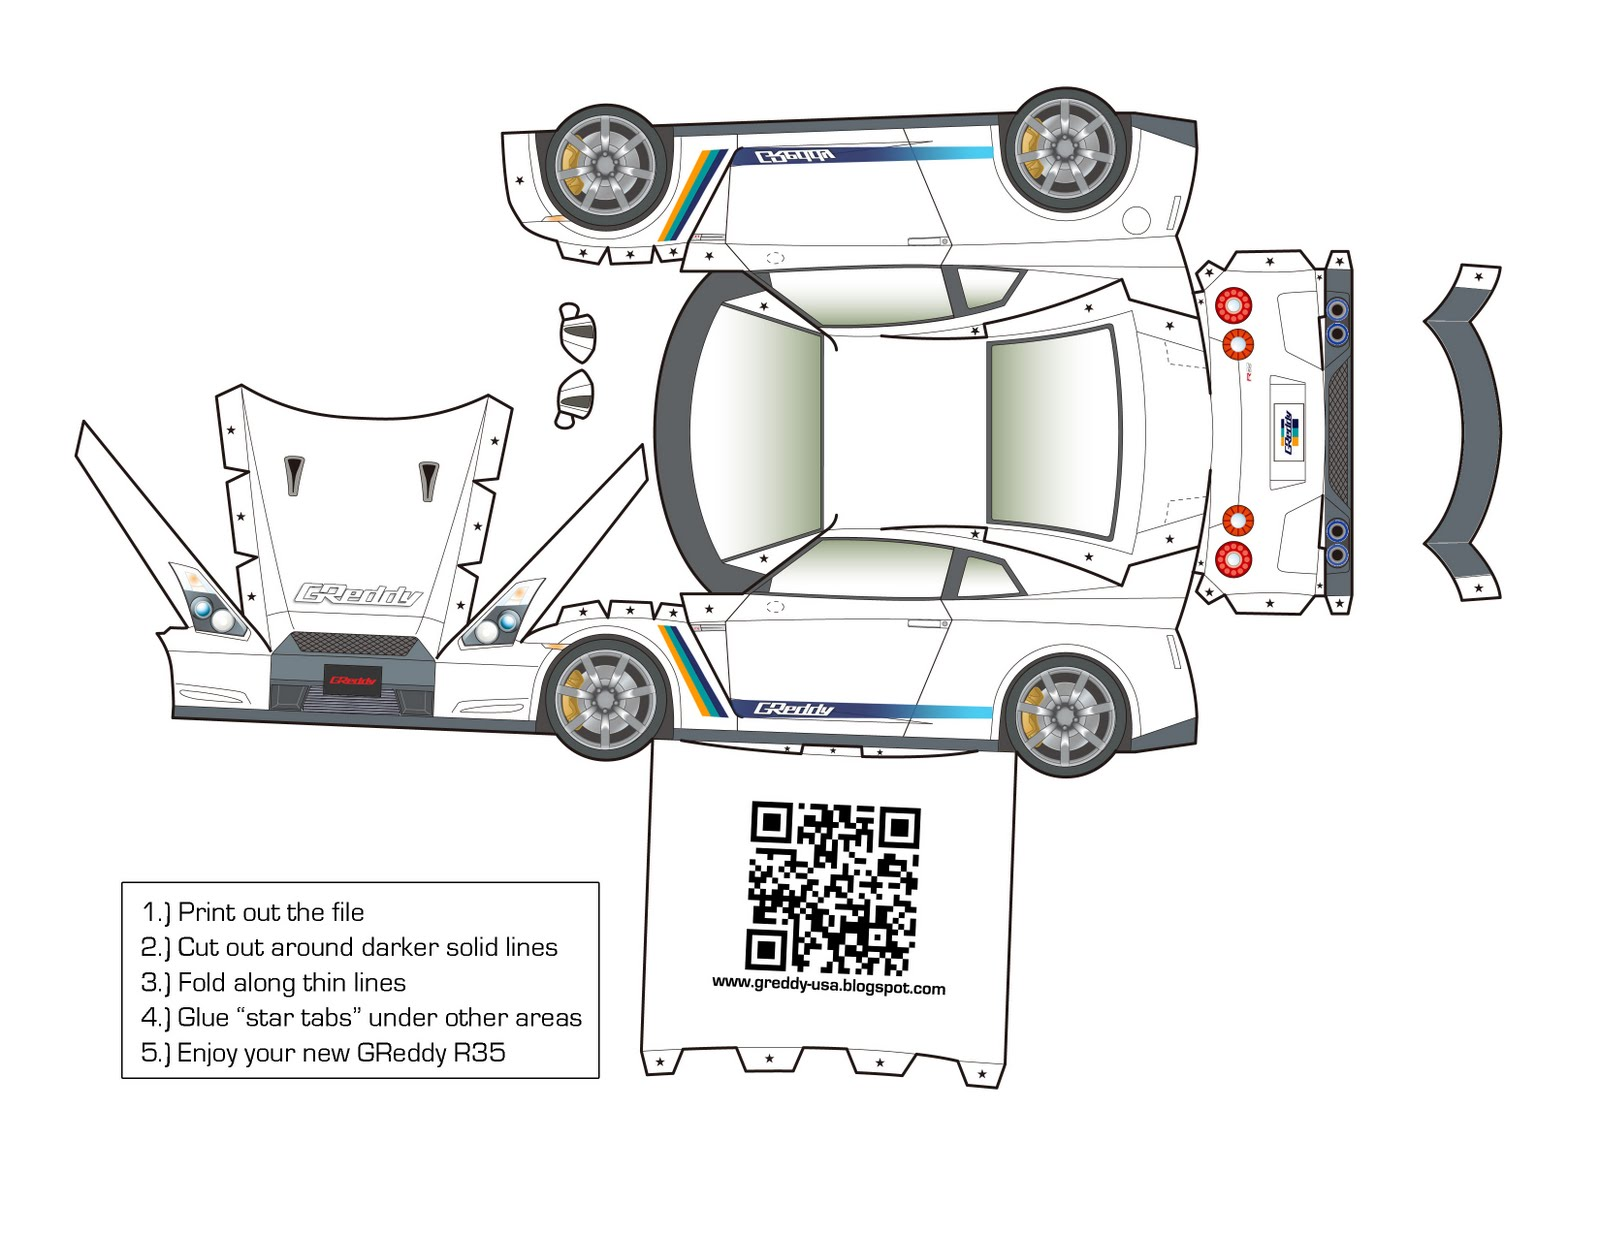 Welcome to the official GReddy USA blog: GReddy Paper Craft 2